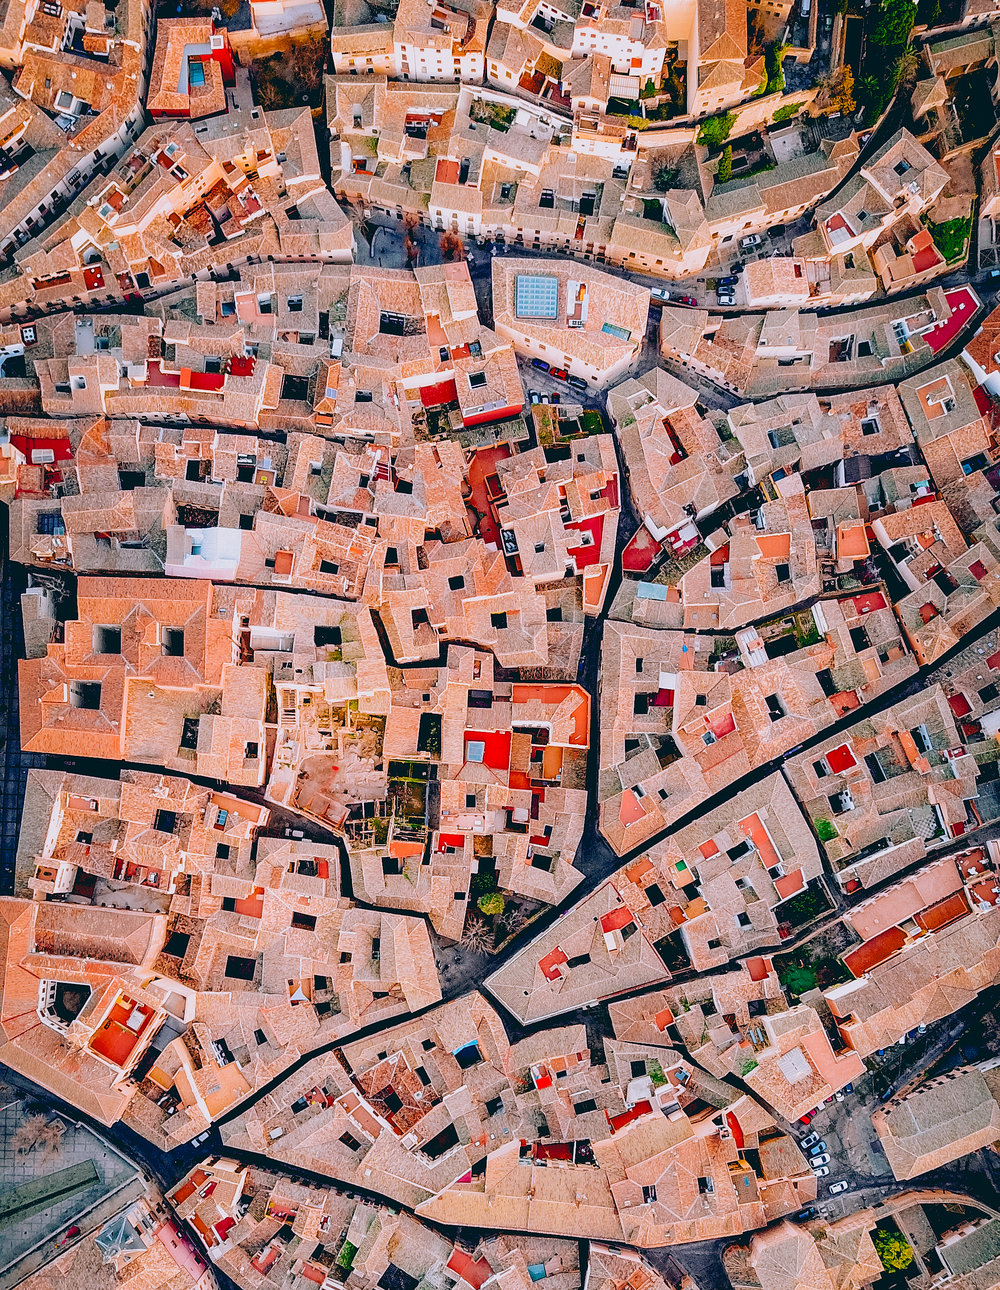 5/26/2017  Toledo, Spain  39.858264, -4.024749  Check out this incredible drone shot of Toledo, Spain. The city is located in central Spain and is home to roughly 80,000 residents. Located on a mountaintop with sweeping views, Toldeo is often recognized for its historic sites, including the Alcázar and the Zocodover.    Drone photo by: Martin Sanchez